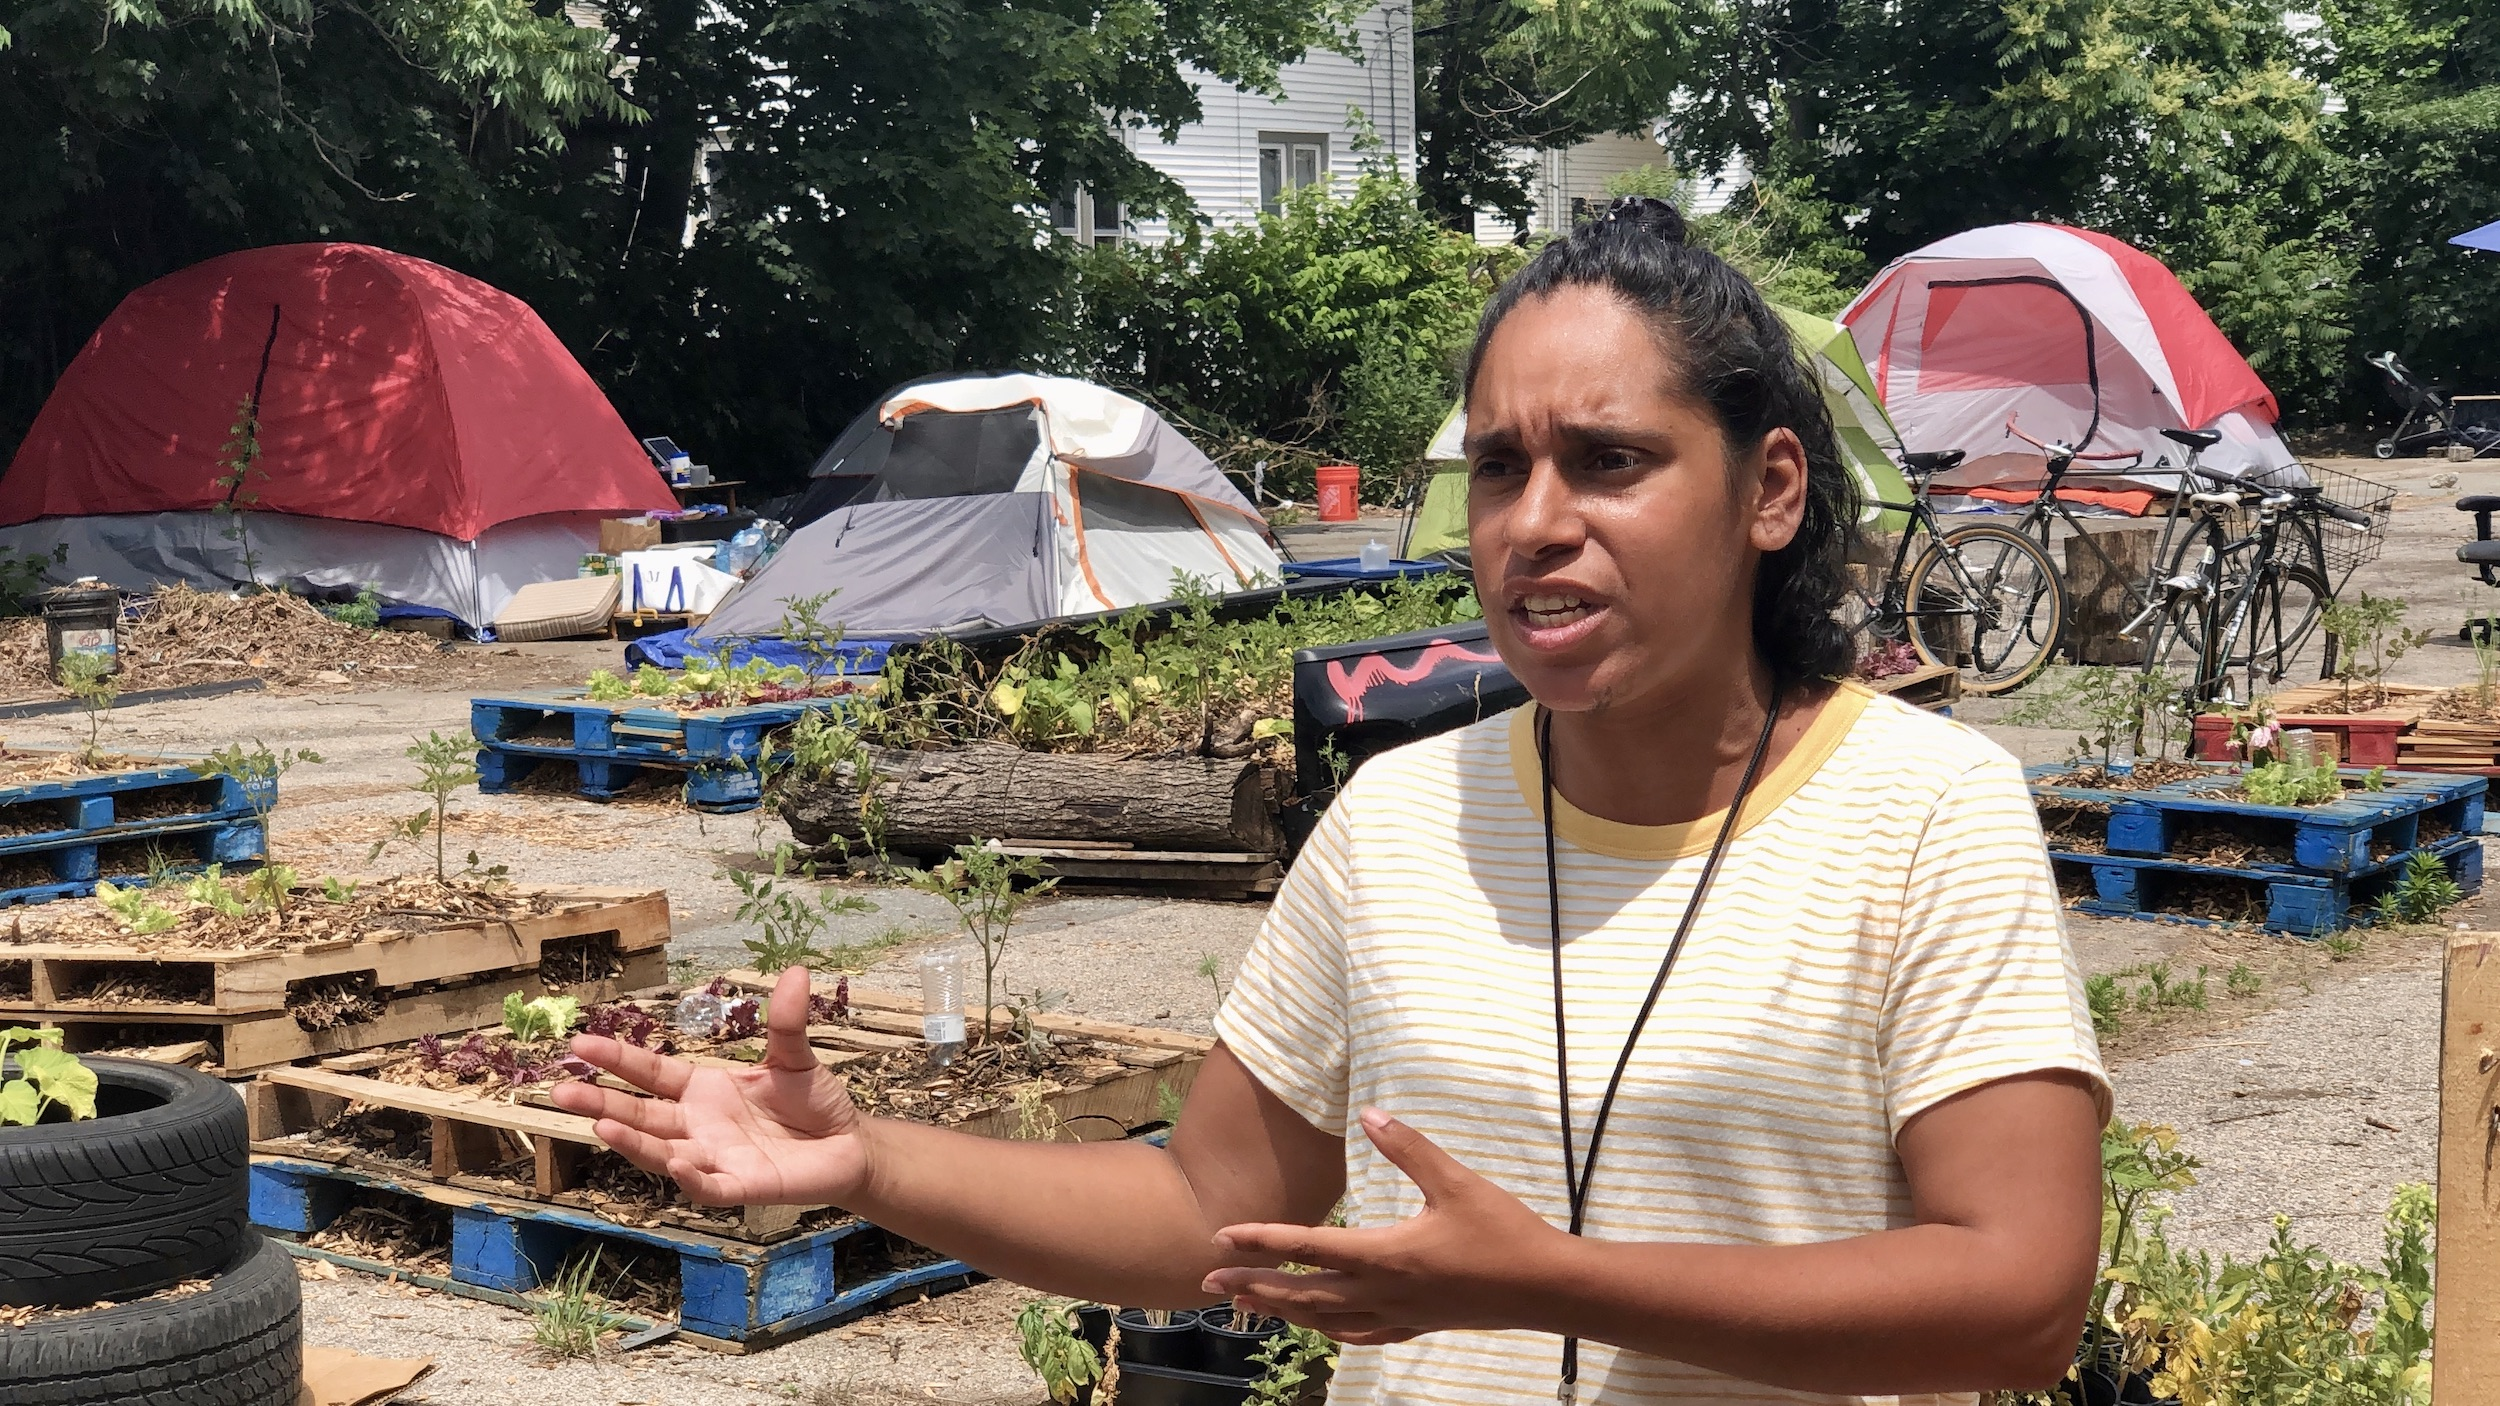 Photo for Given 48 hours to vacate, unhoused encampment in PVD holds press conference